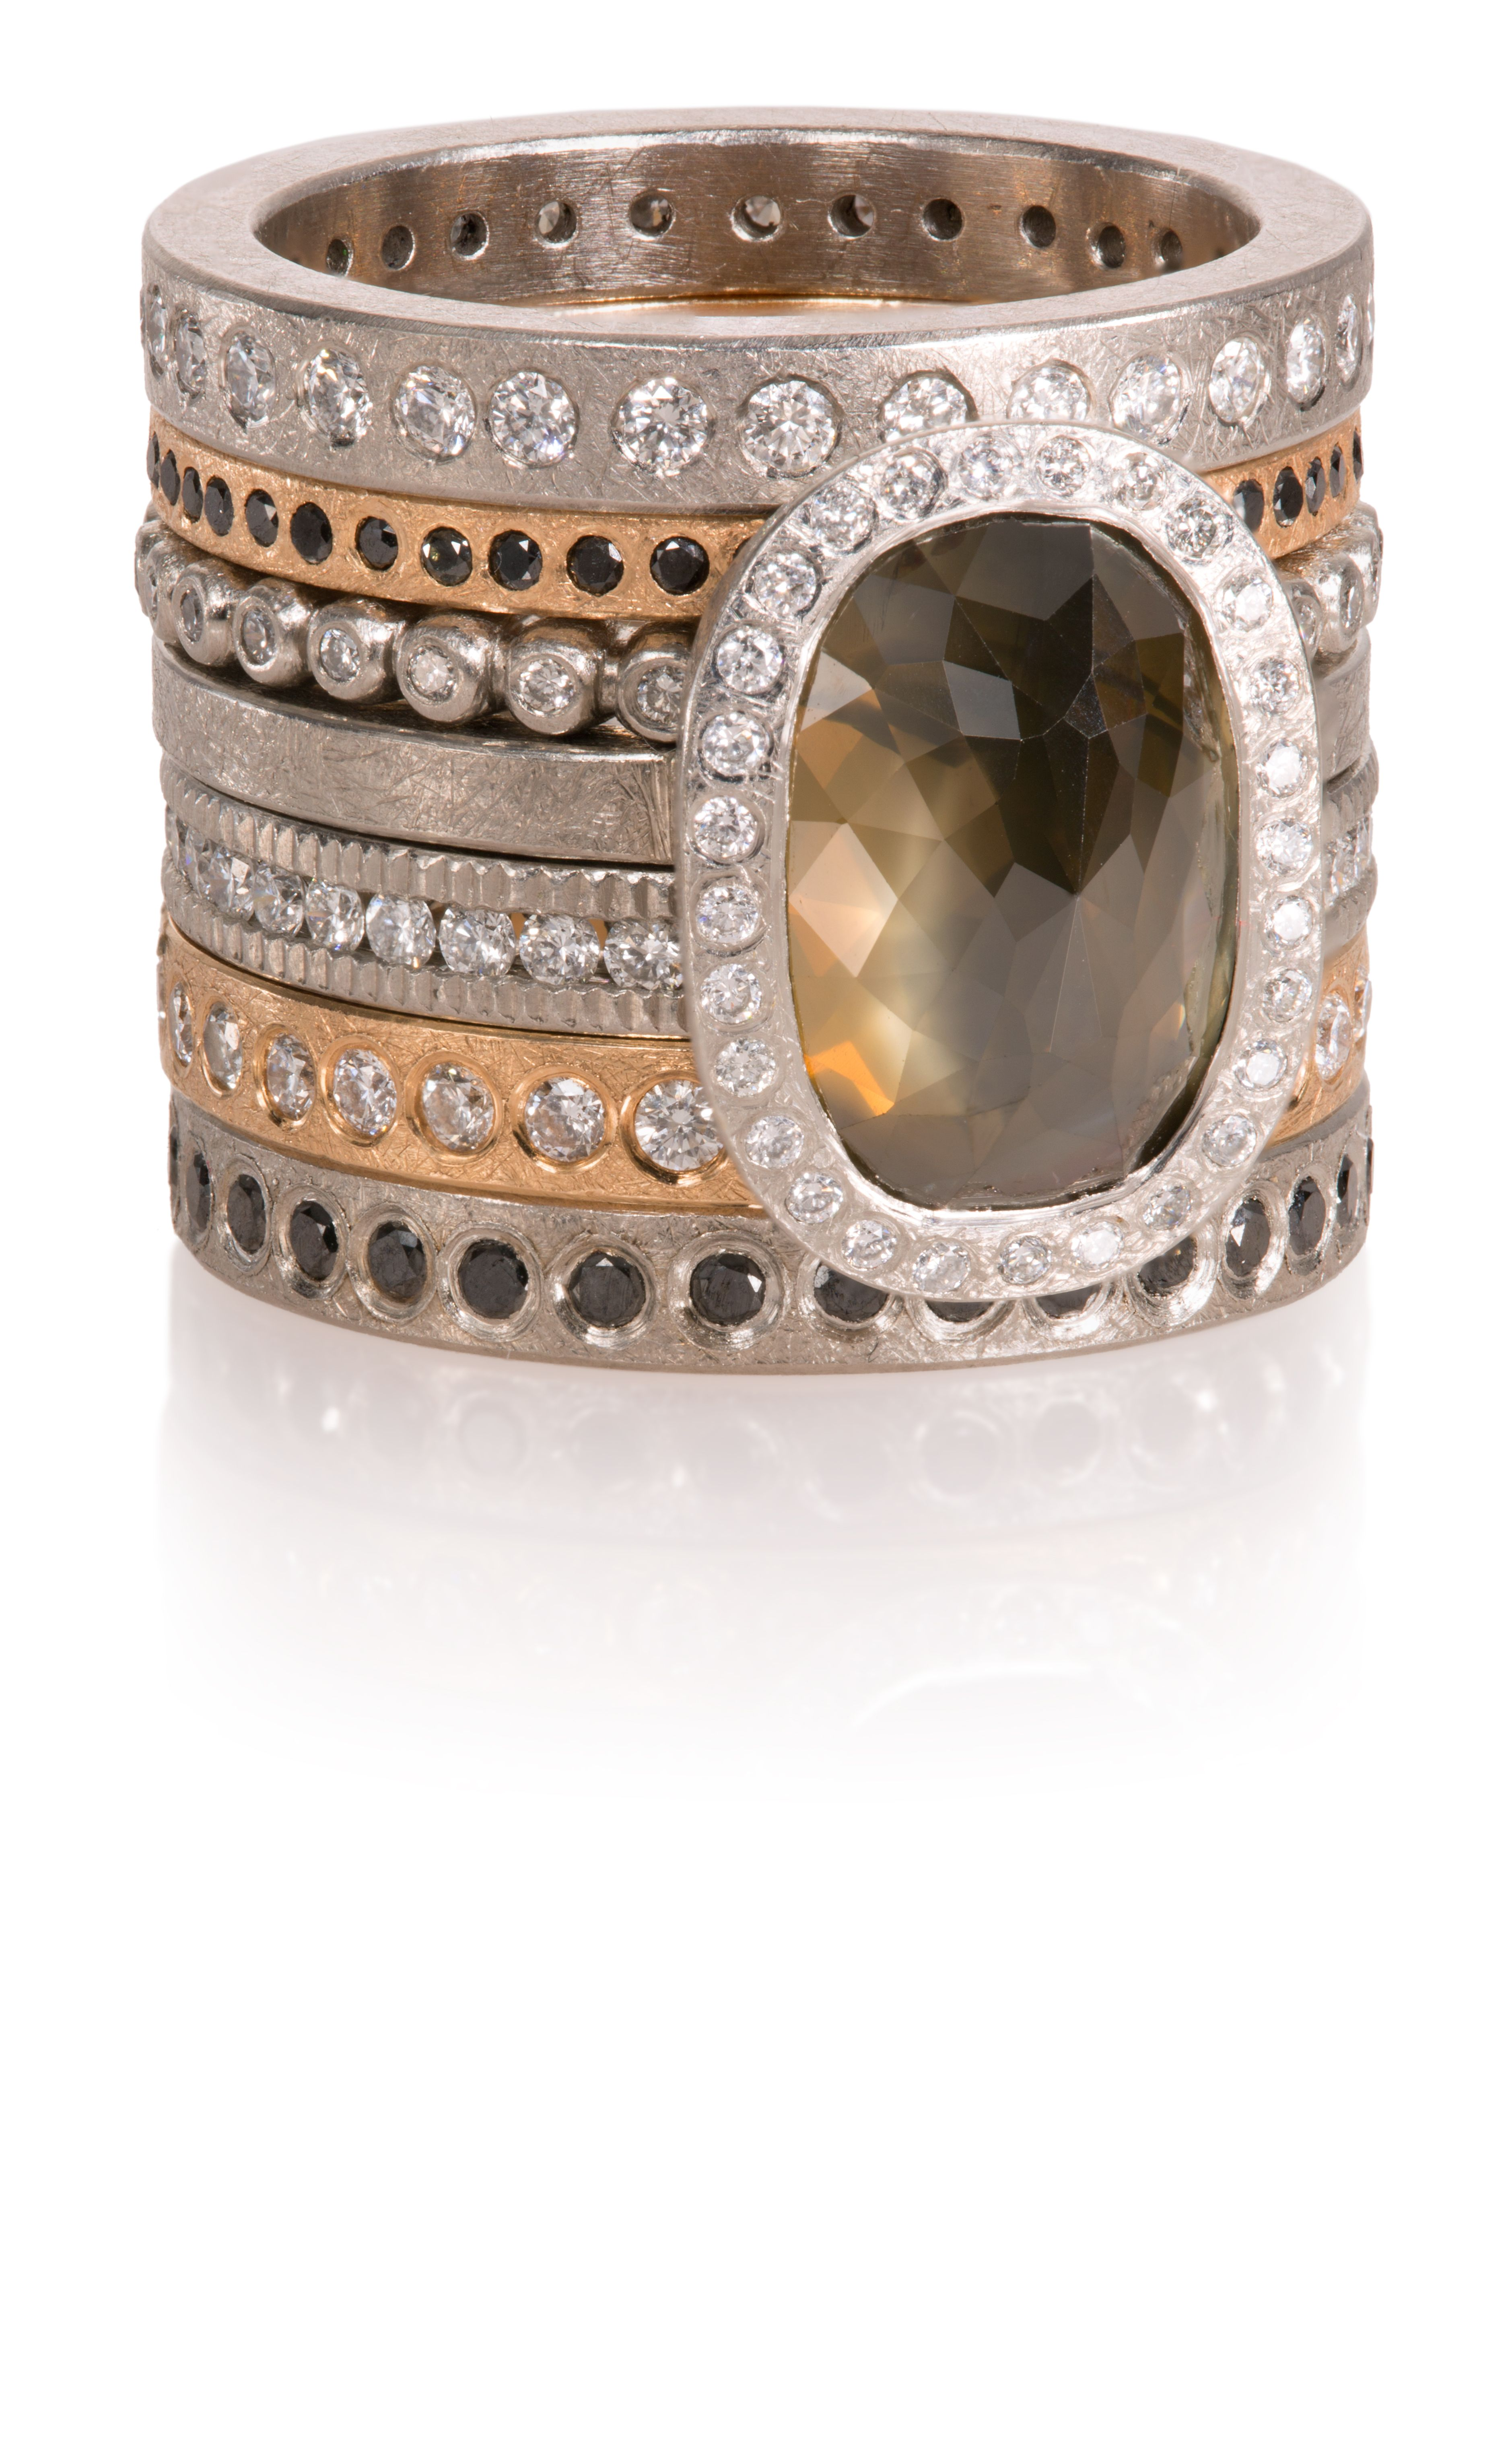 e5c6c04871ea62 Todd Reed Jewelry, Alternative Bridal, Bridal Stack, Wedding Ring Stacks,  Colored Diamonds